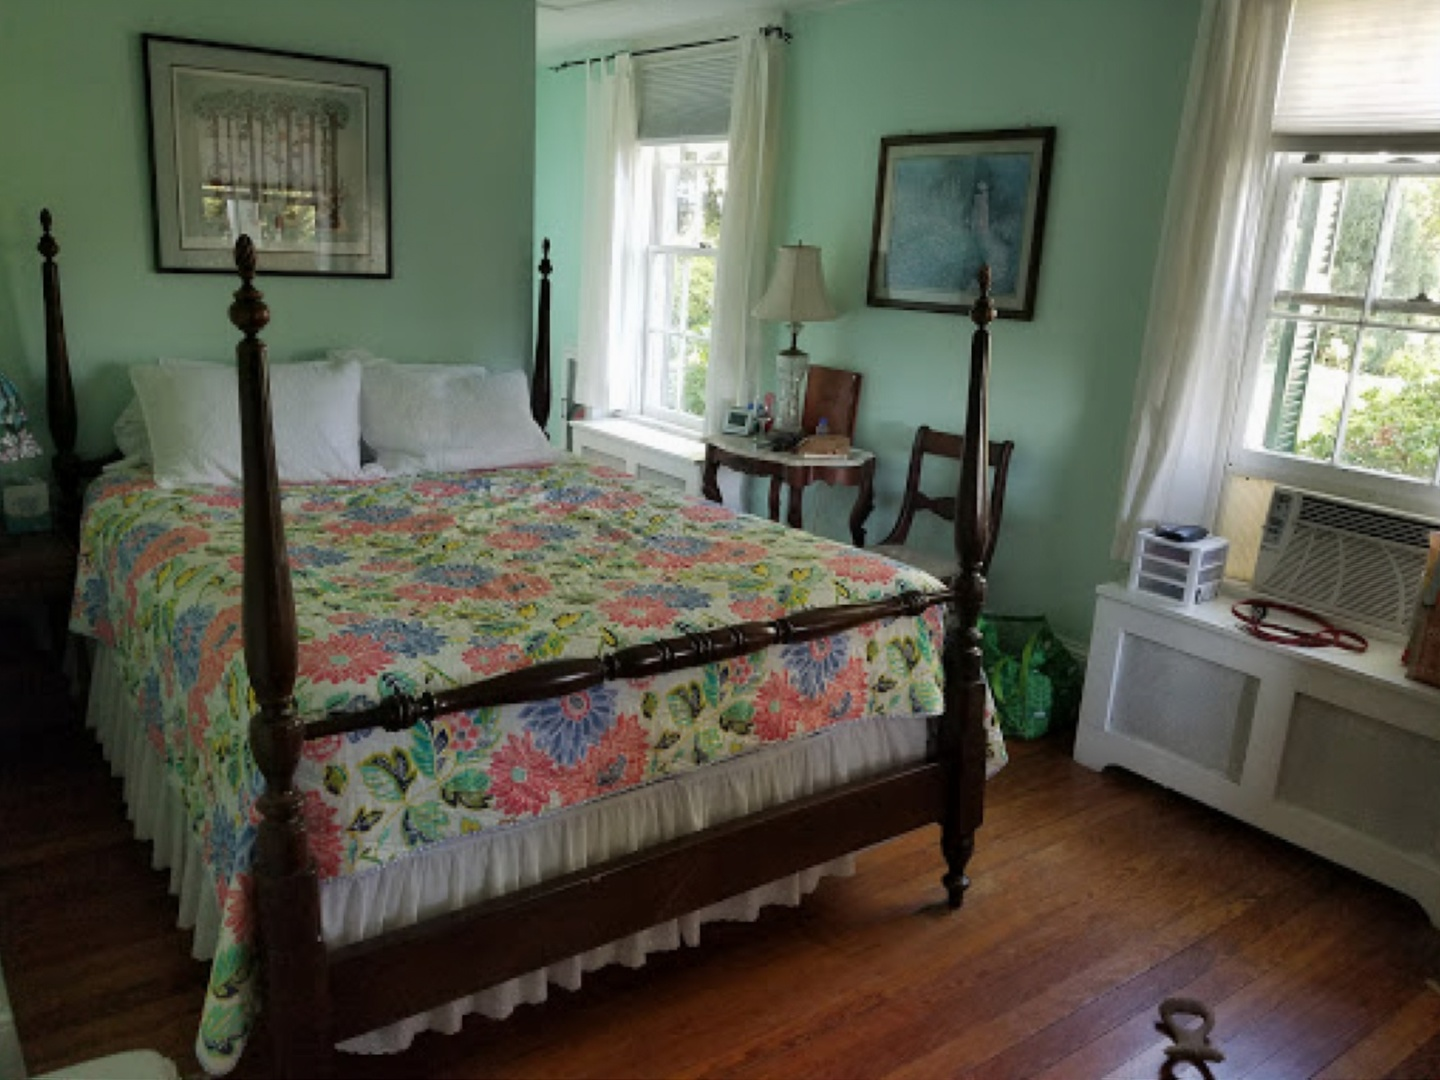 A bedroom with a bed in a room at Briar Patch Bed & Breakfast Inn.